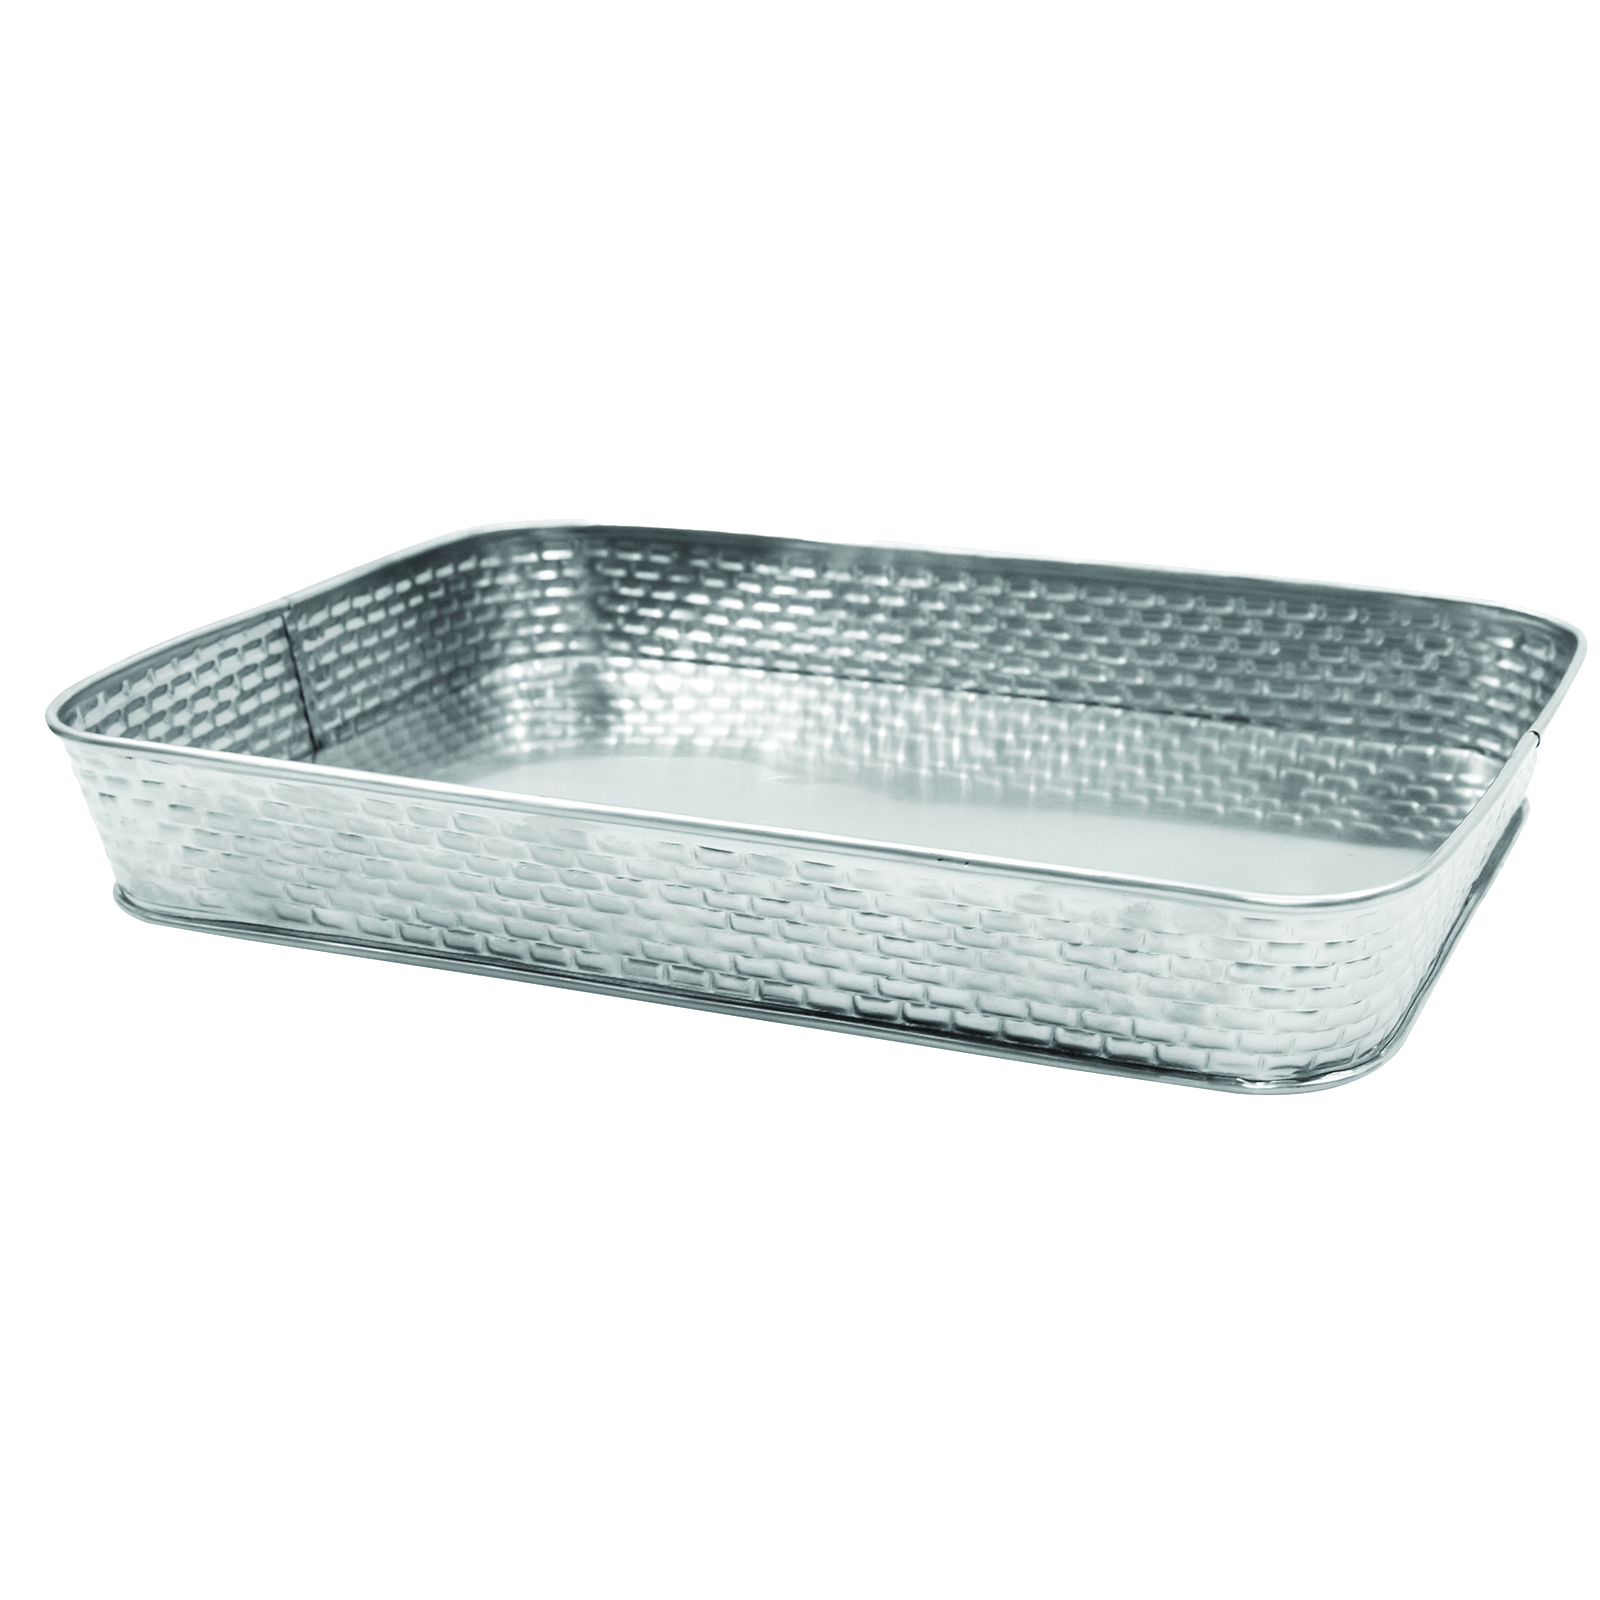 TableCraft Products GPSS120 platter, stainless steel